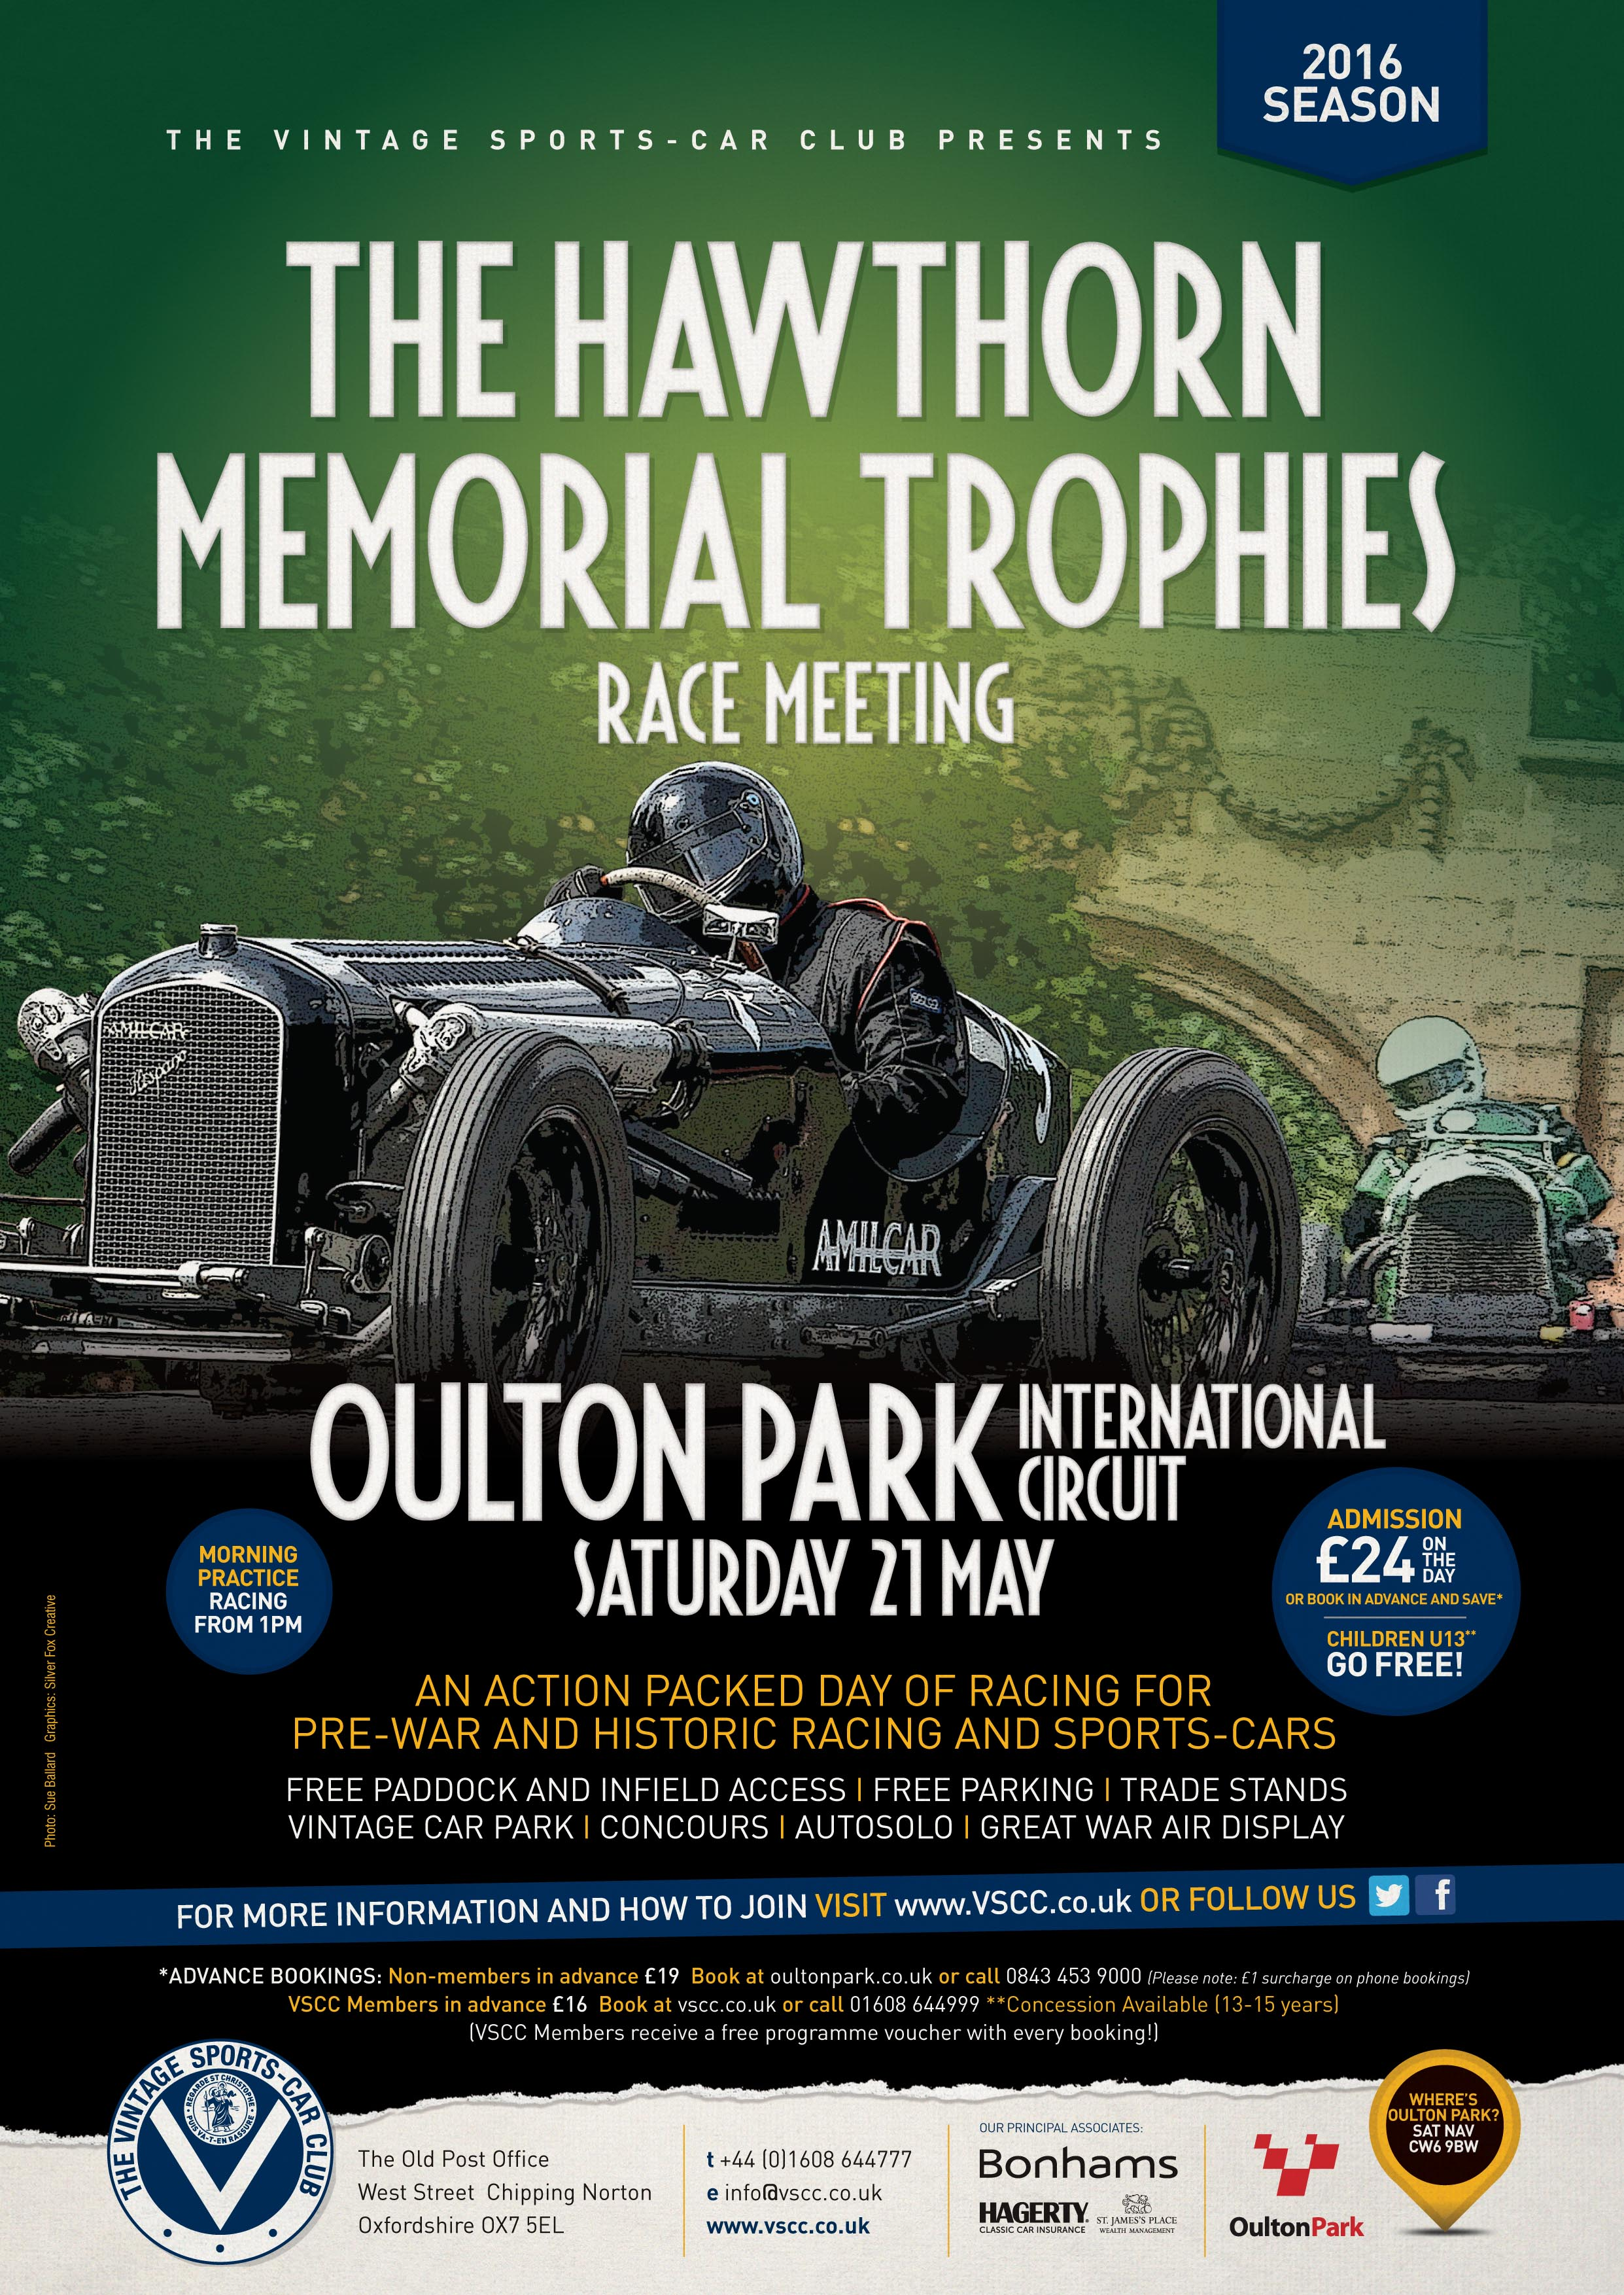 VSCC return to glorious Cheshire to honour Mike Hawthorn at Oulton Park tomorrow cover